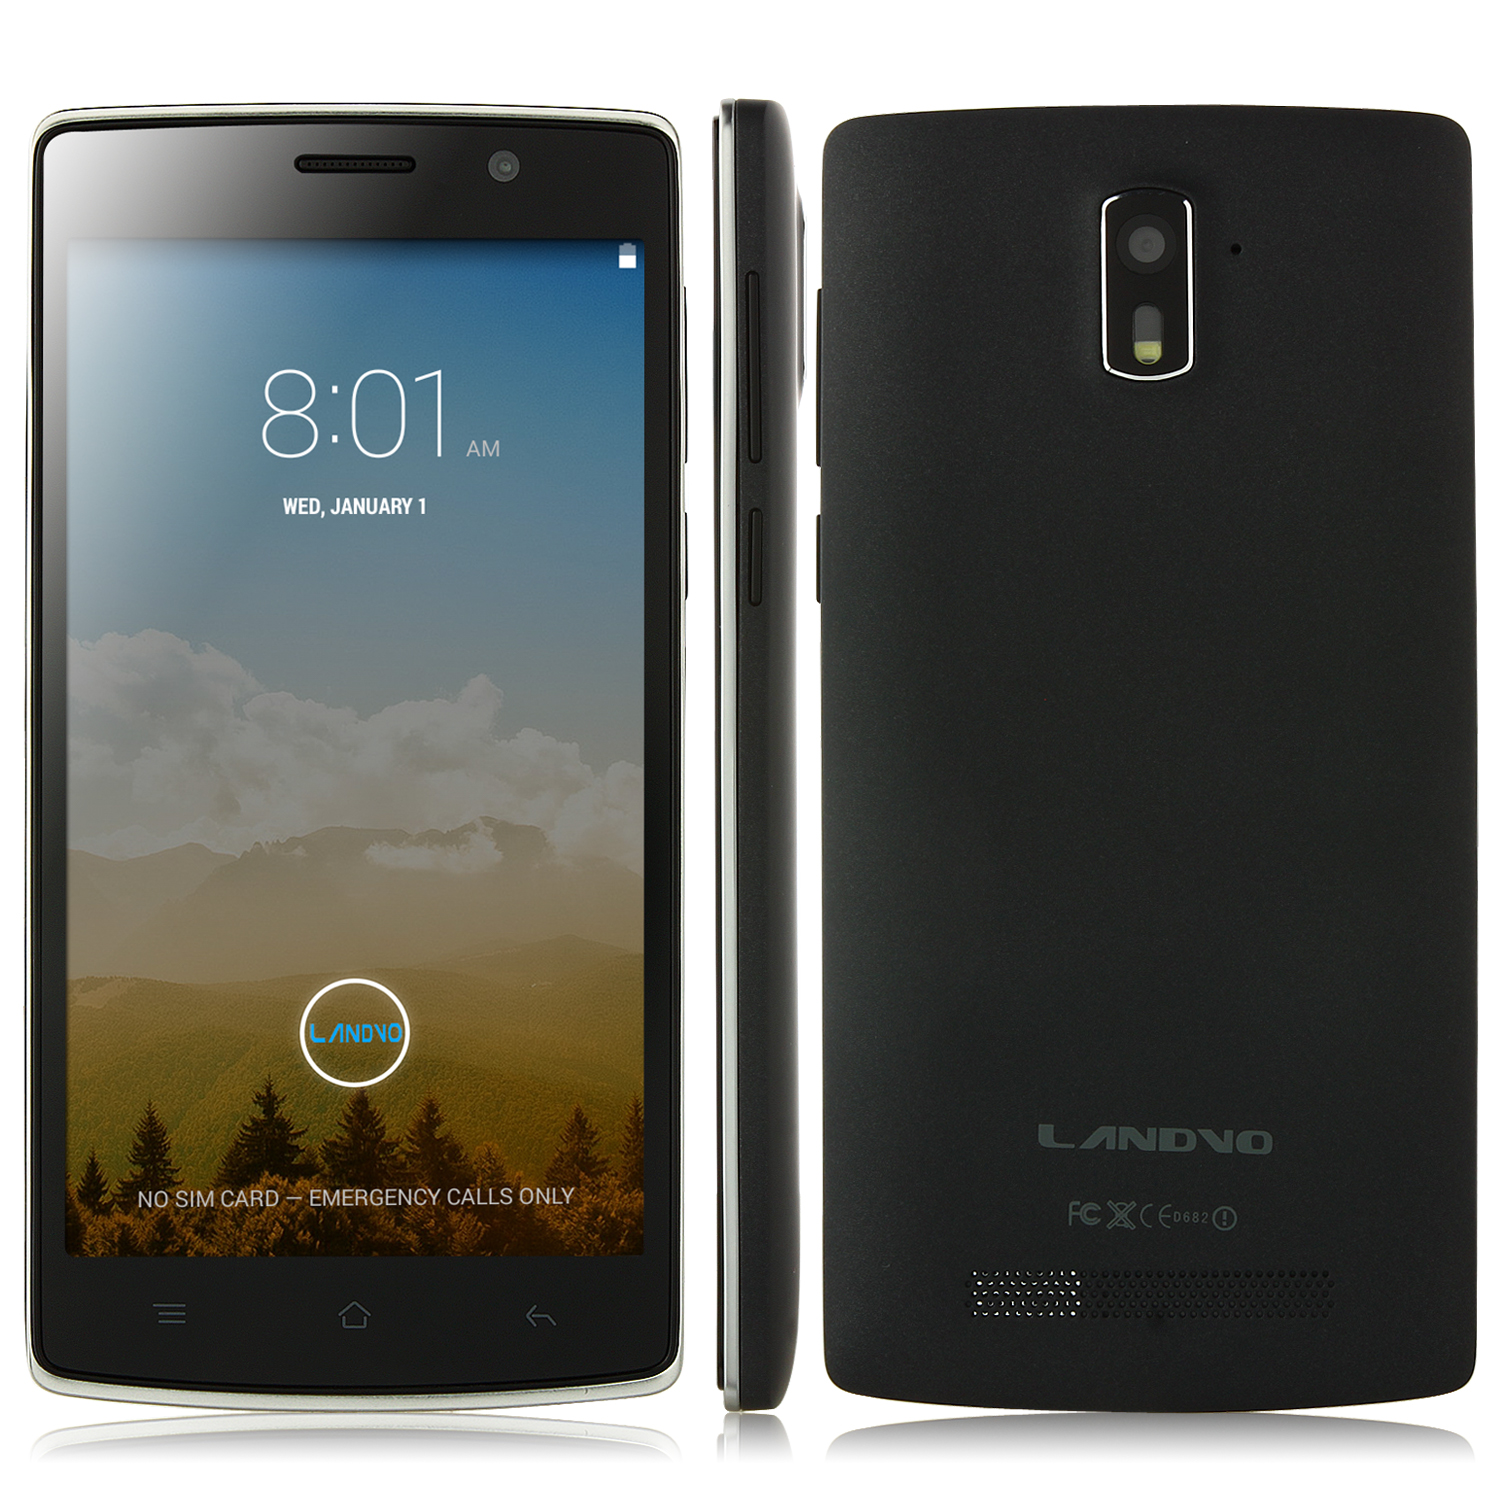 LANDVO L200 Smartphone Android 4.4 MTK6582 5.0 Inch QHD Screen 3G Smart Wake Up Black